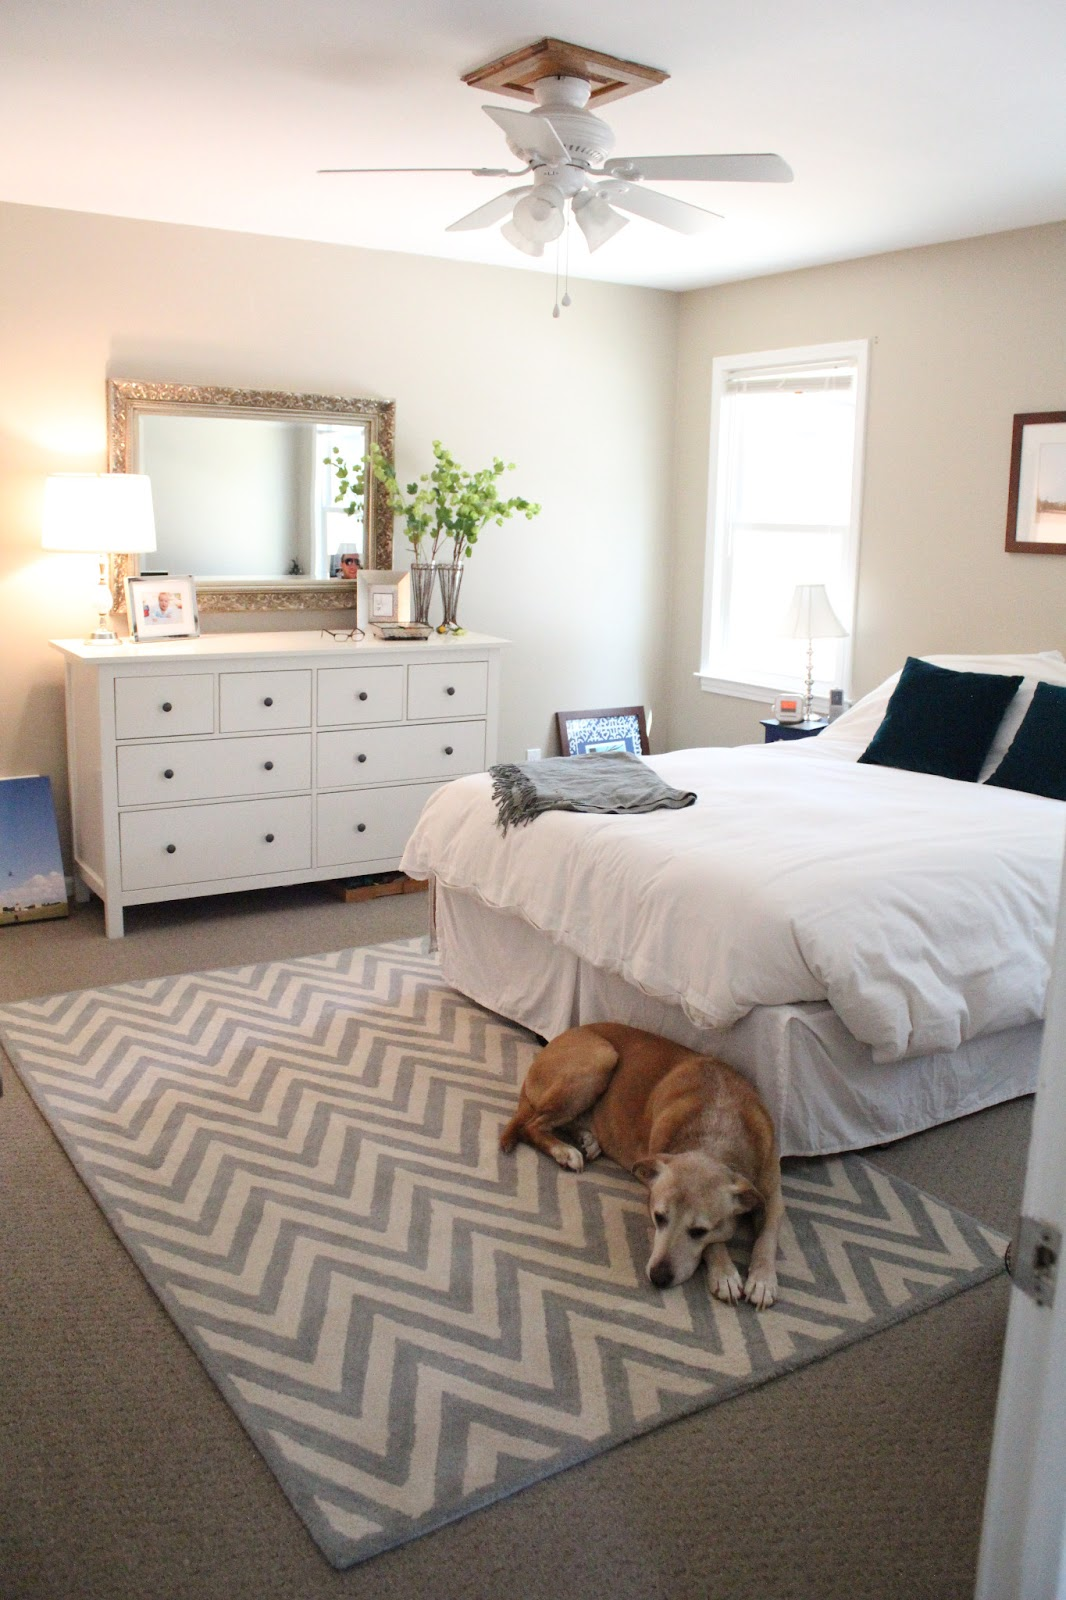 Ten june our rental house a master bedroom tour for Simple bedroom ideas